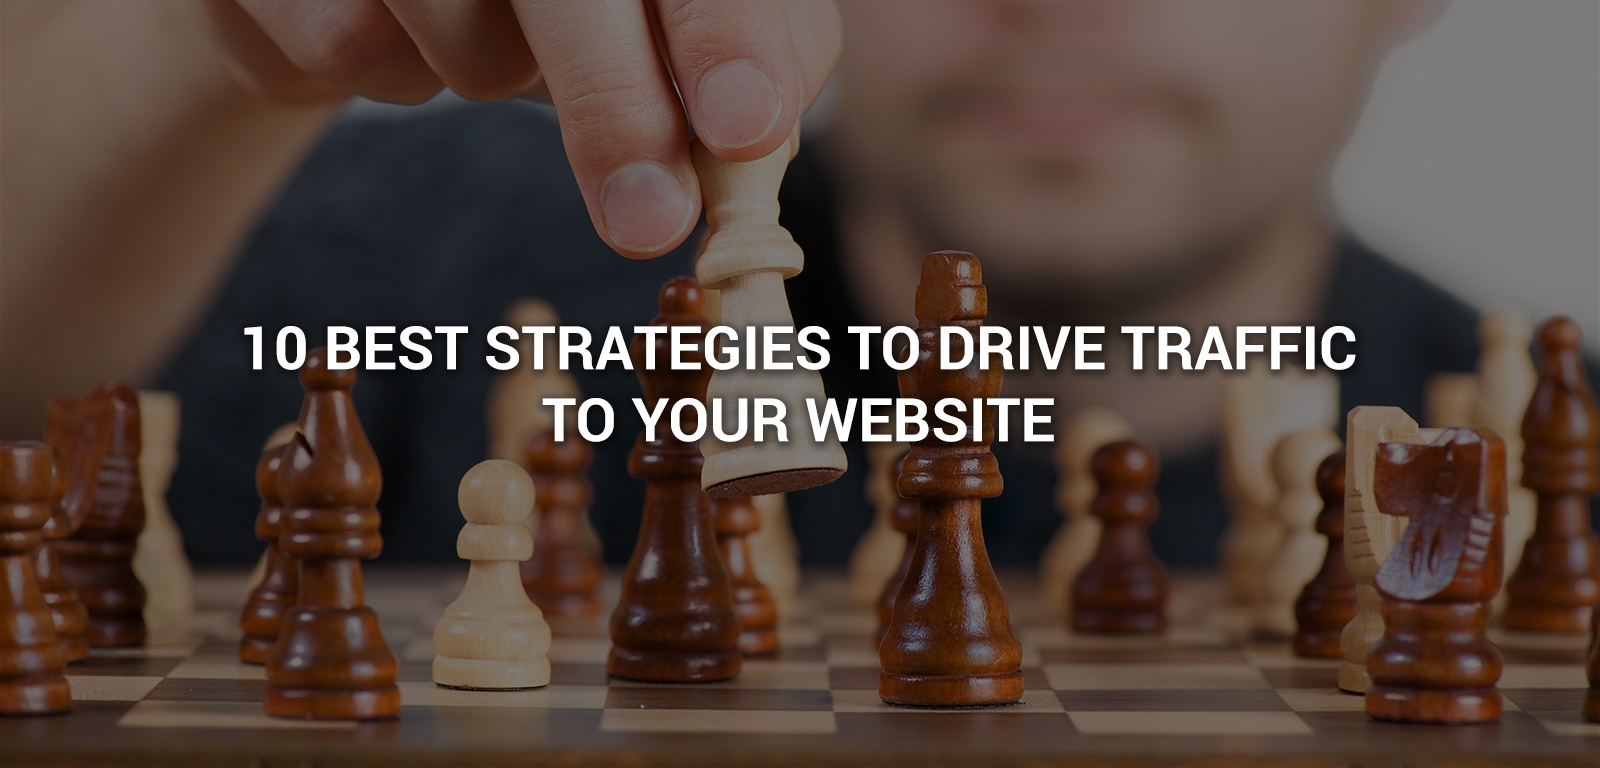 10-best-strtegies-to-drive-traffic-to-your-website.jpg